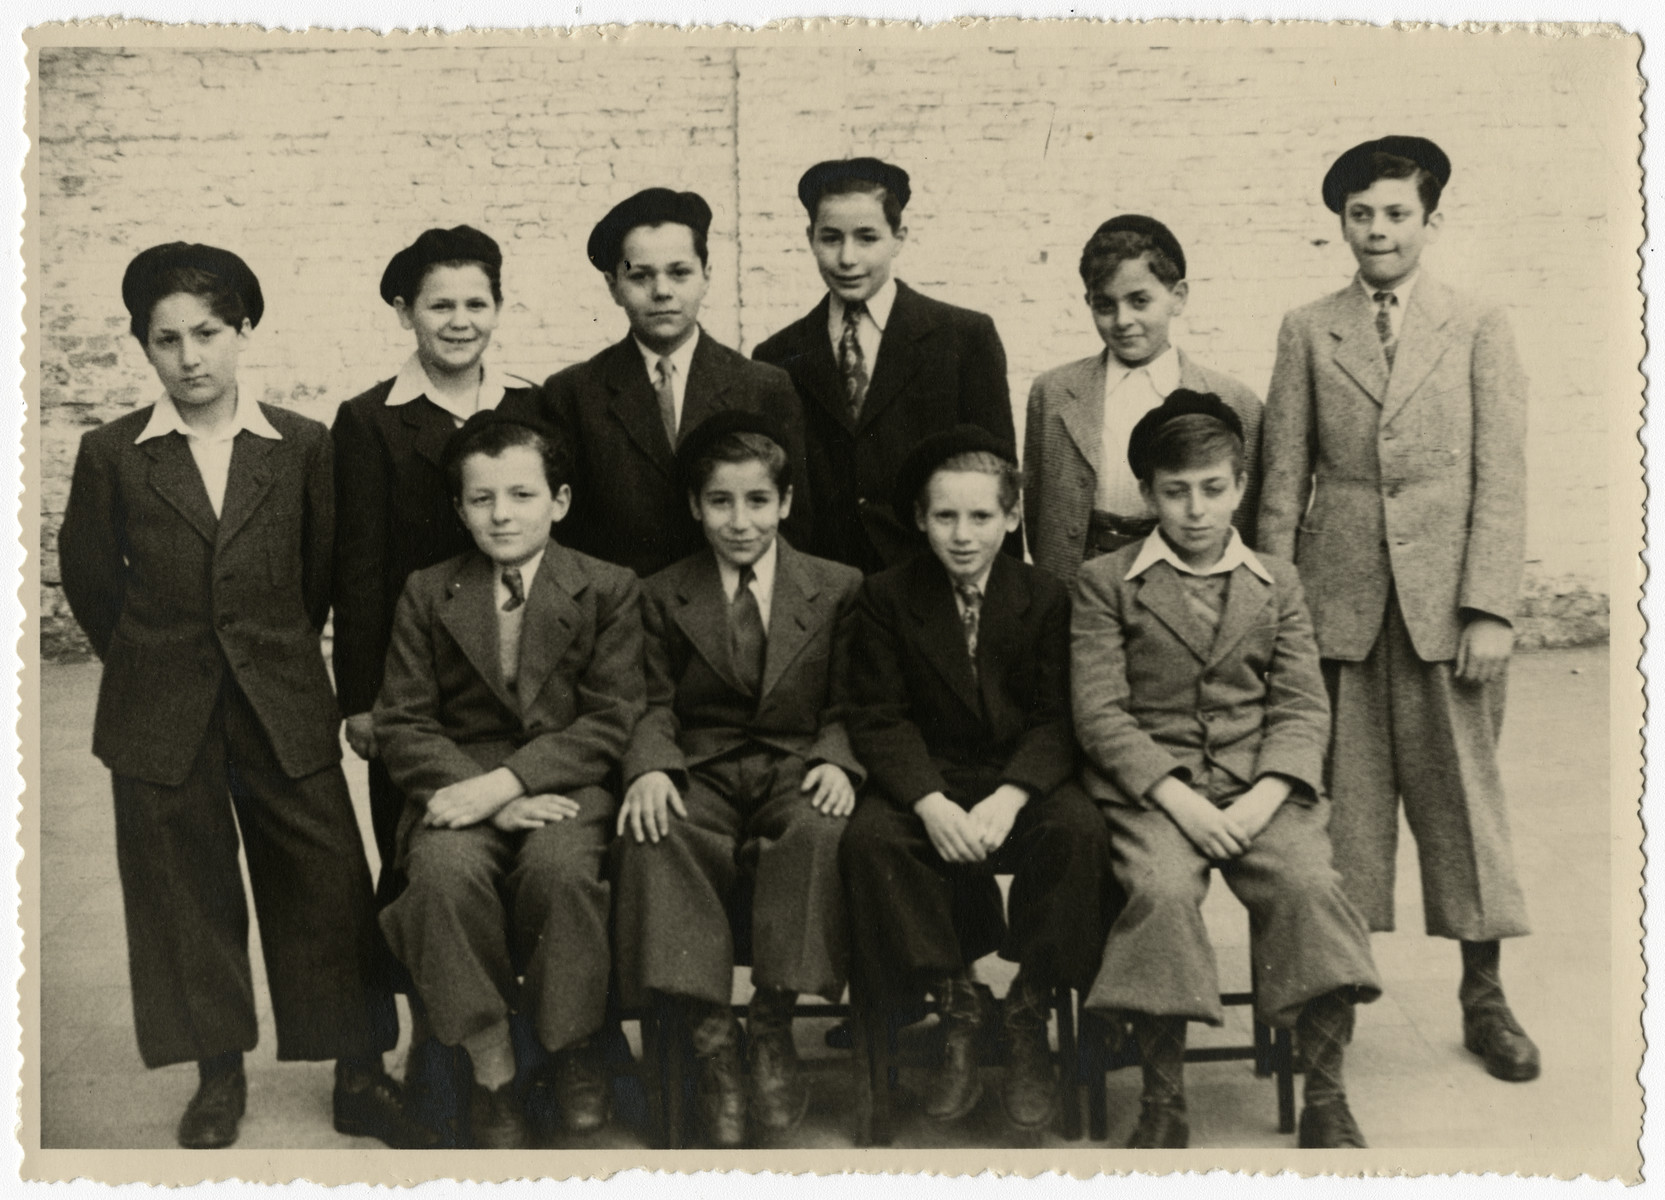 Group portrait of orphans in the postwarTiefenbrunner children's home in Antwerp.  Pictured sitting are Boris Bornstein (center) and Jacques Fedder (right).  Standing left to right are: Simon Steil, Kalman, Sami, Leopold Moll, Charles Bornstein and unidentified.